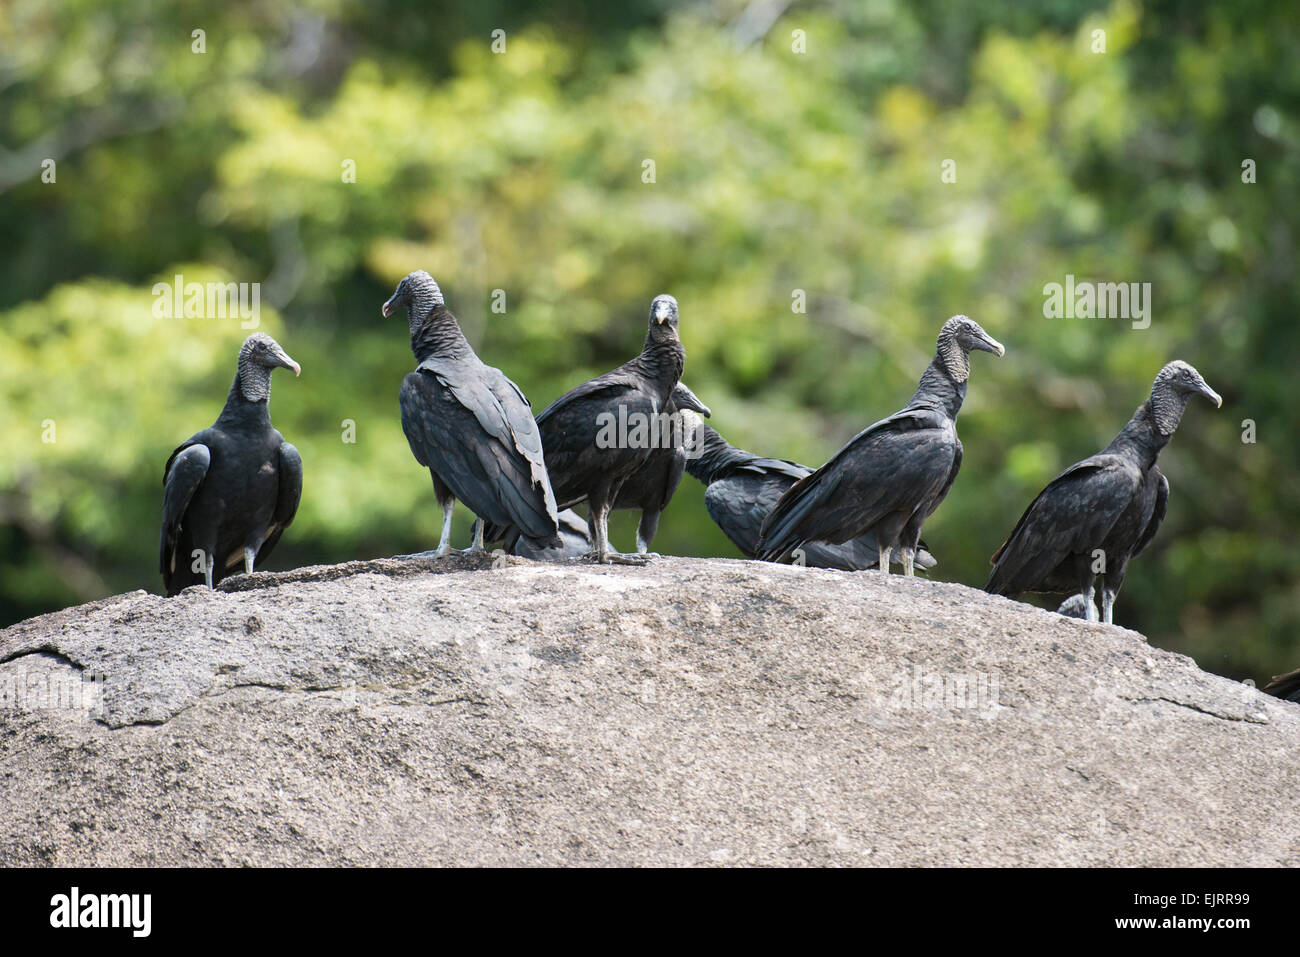 Black Vultures, Coragyps atratus, Central Suriname Nature Reserve, Suriname - Stock Image